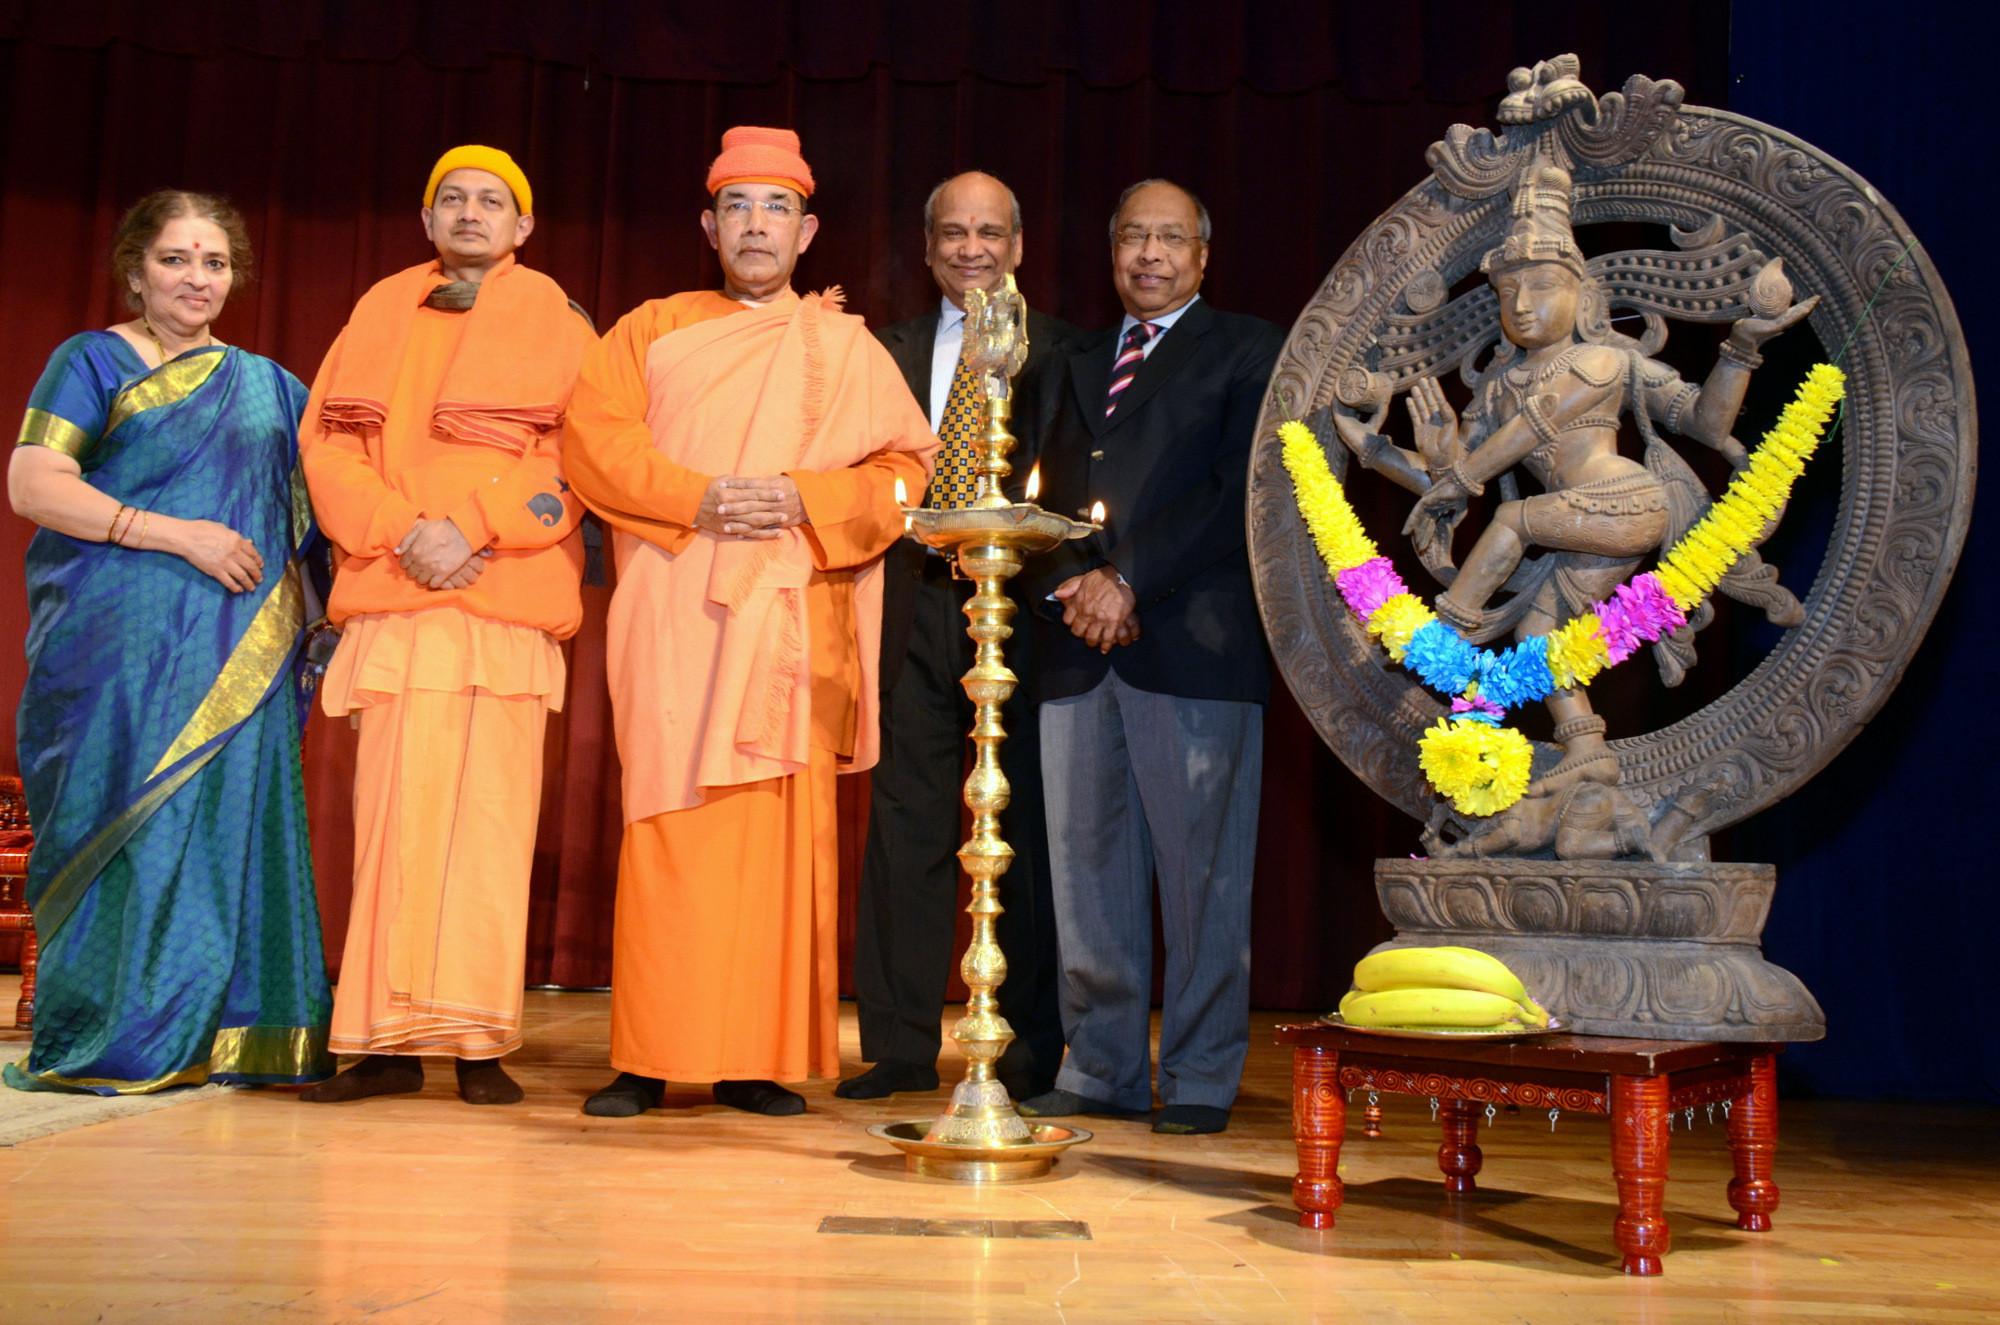 maharudram event at hindu temple of greater chicago